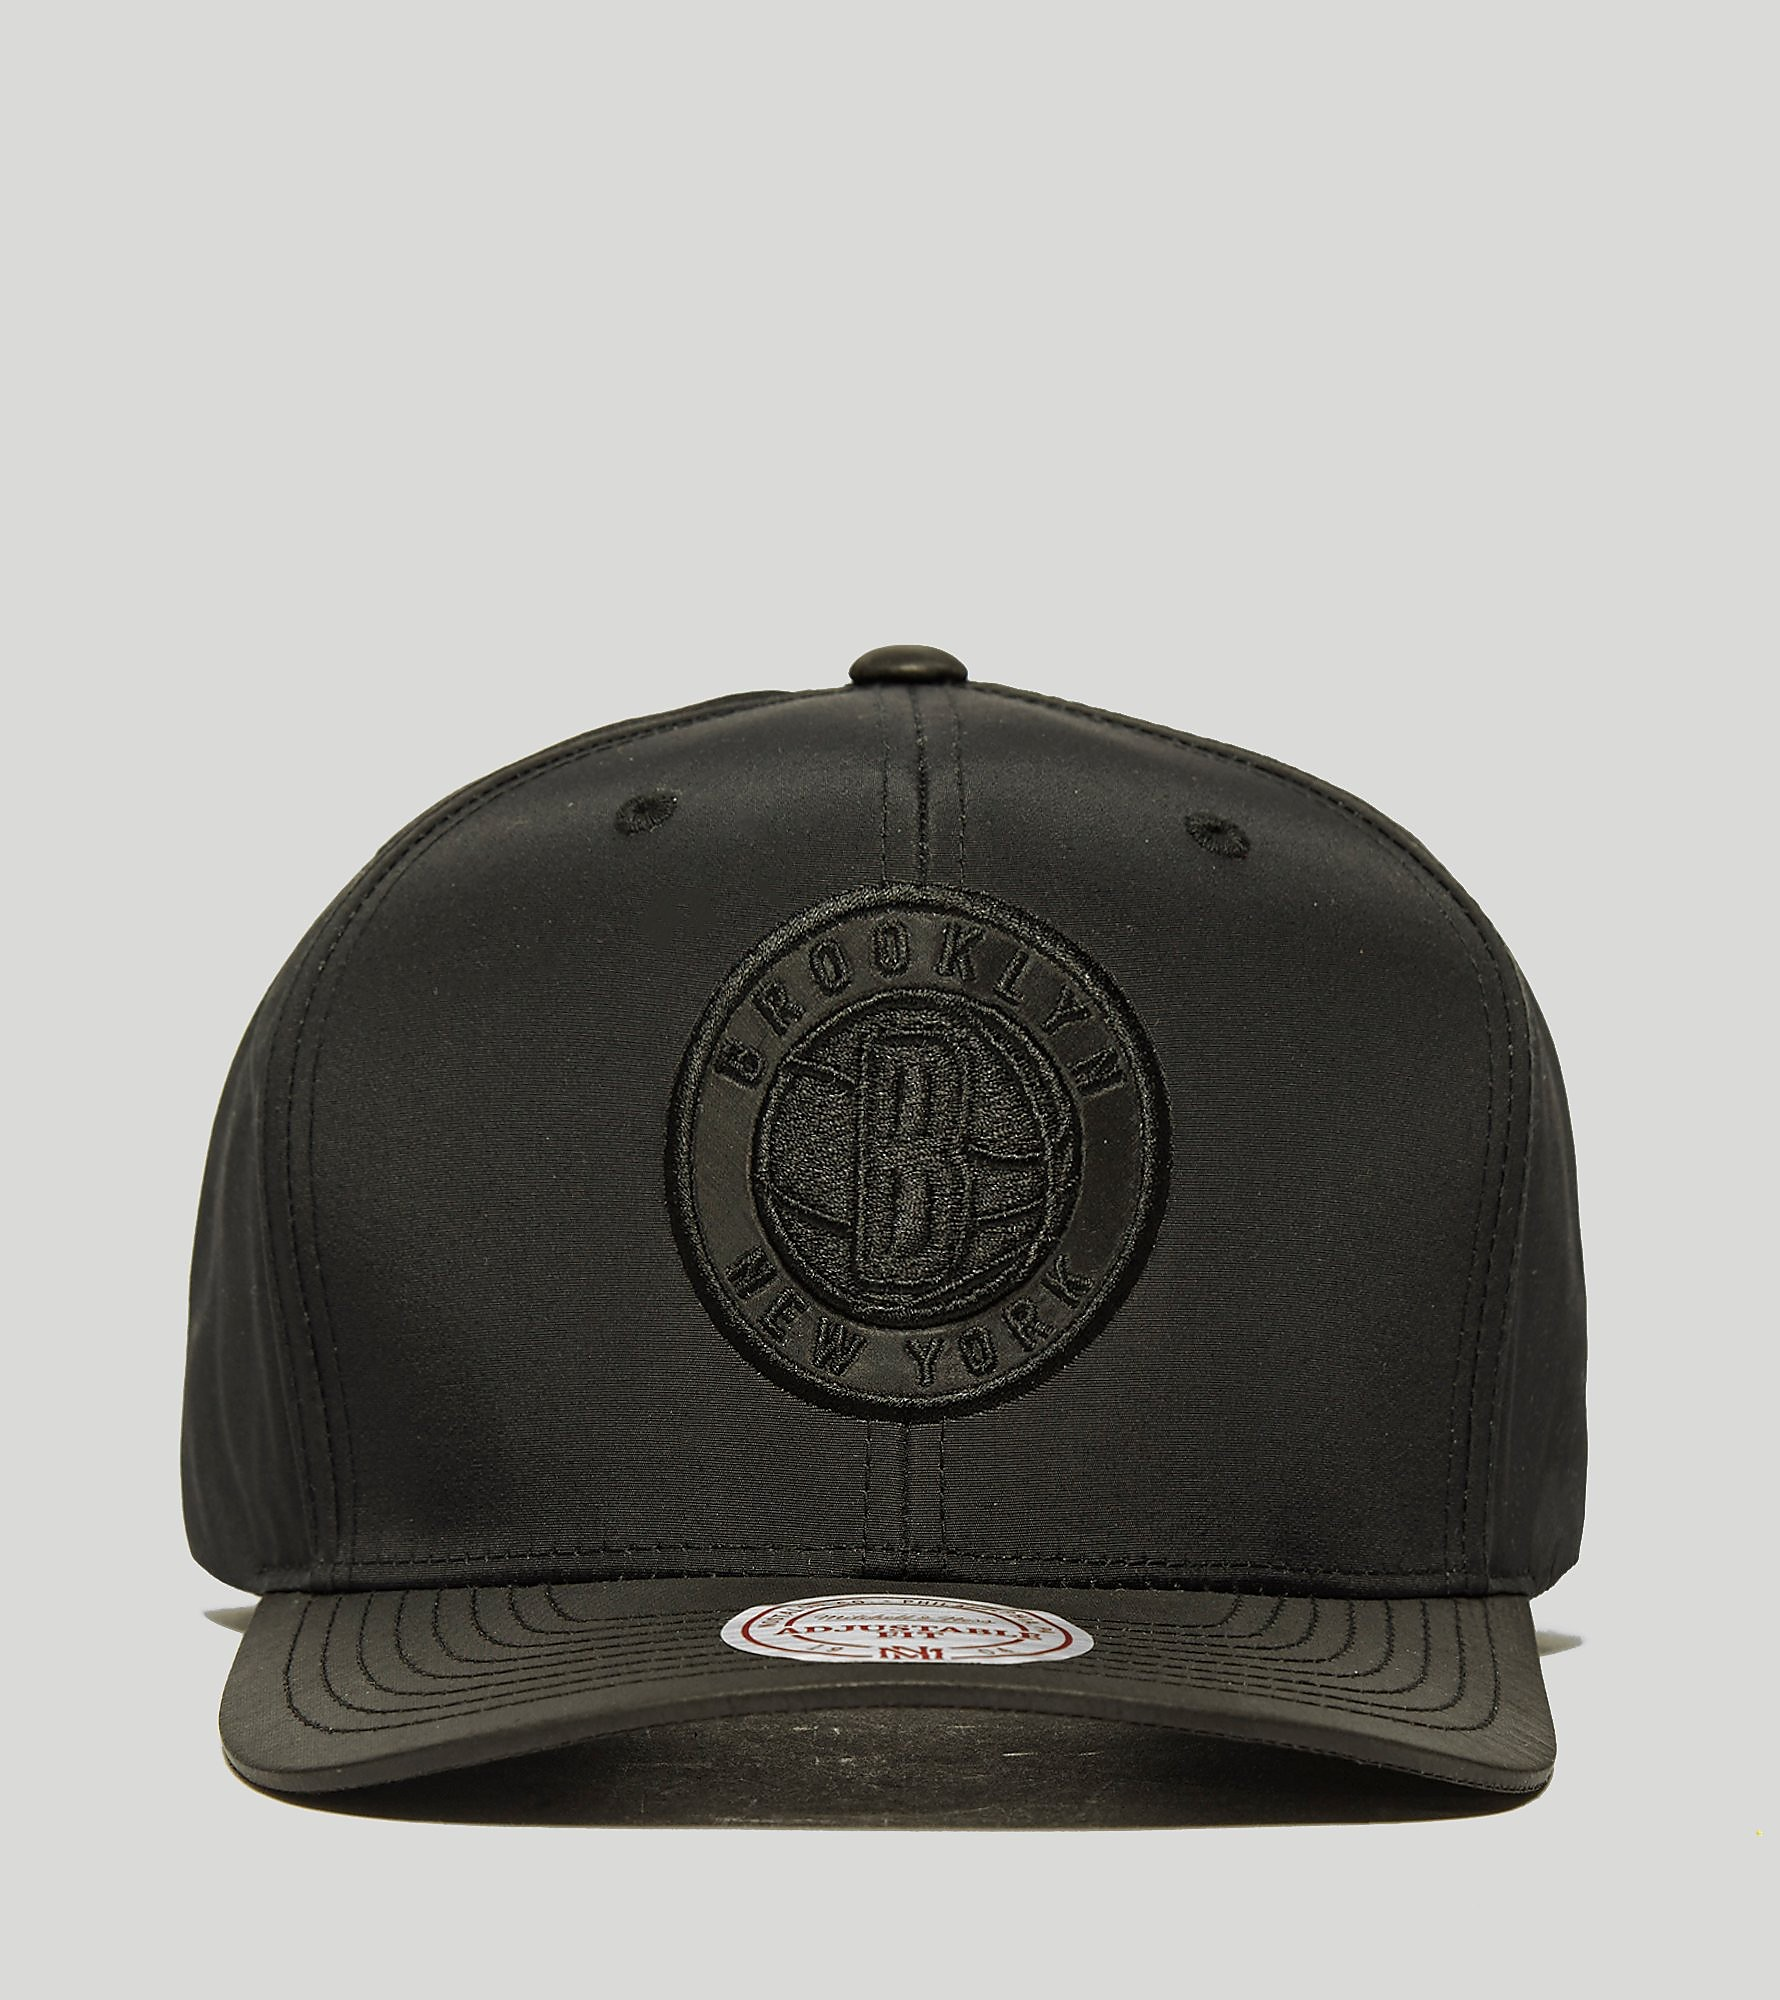 Mitchell & Ness Slick Curved Peak Cap - size? Exclusive